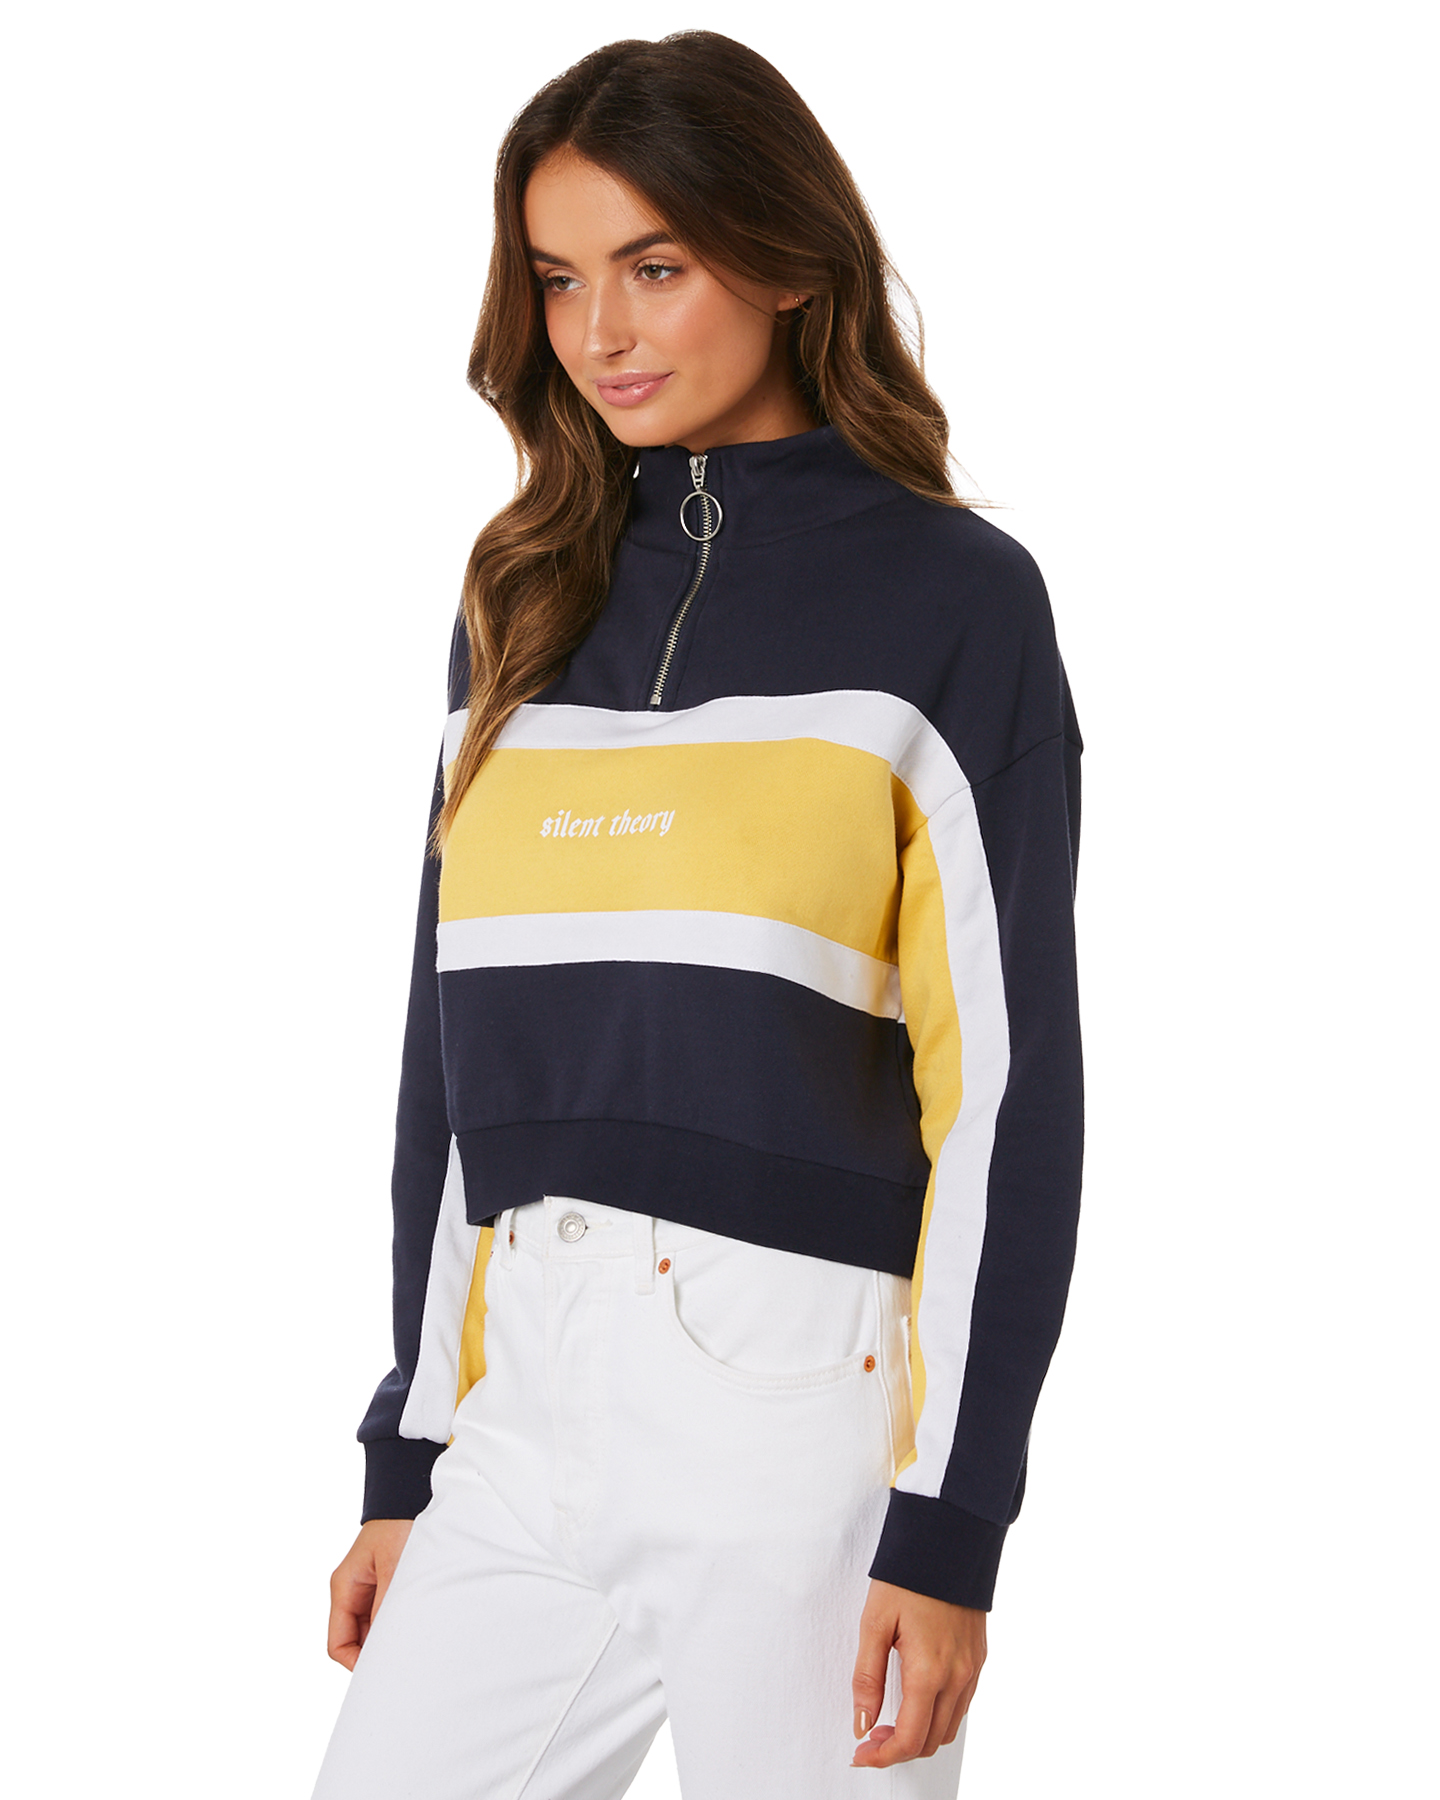 e5cc2238be Silent Theory Womens Selected Quarter Zip Crew - Navy | SurfStitch